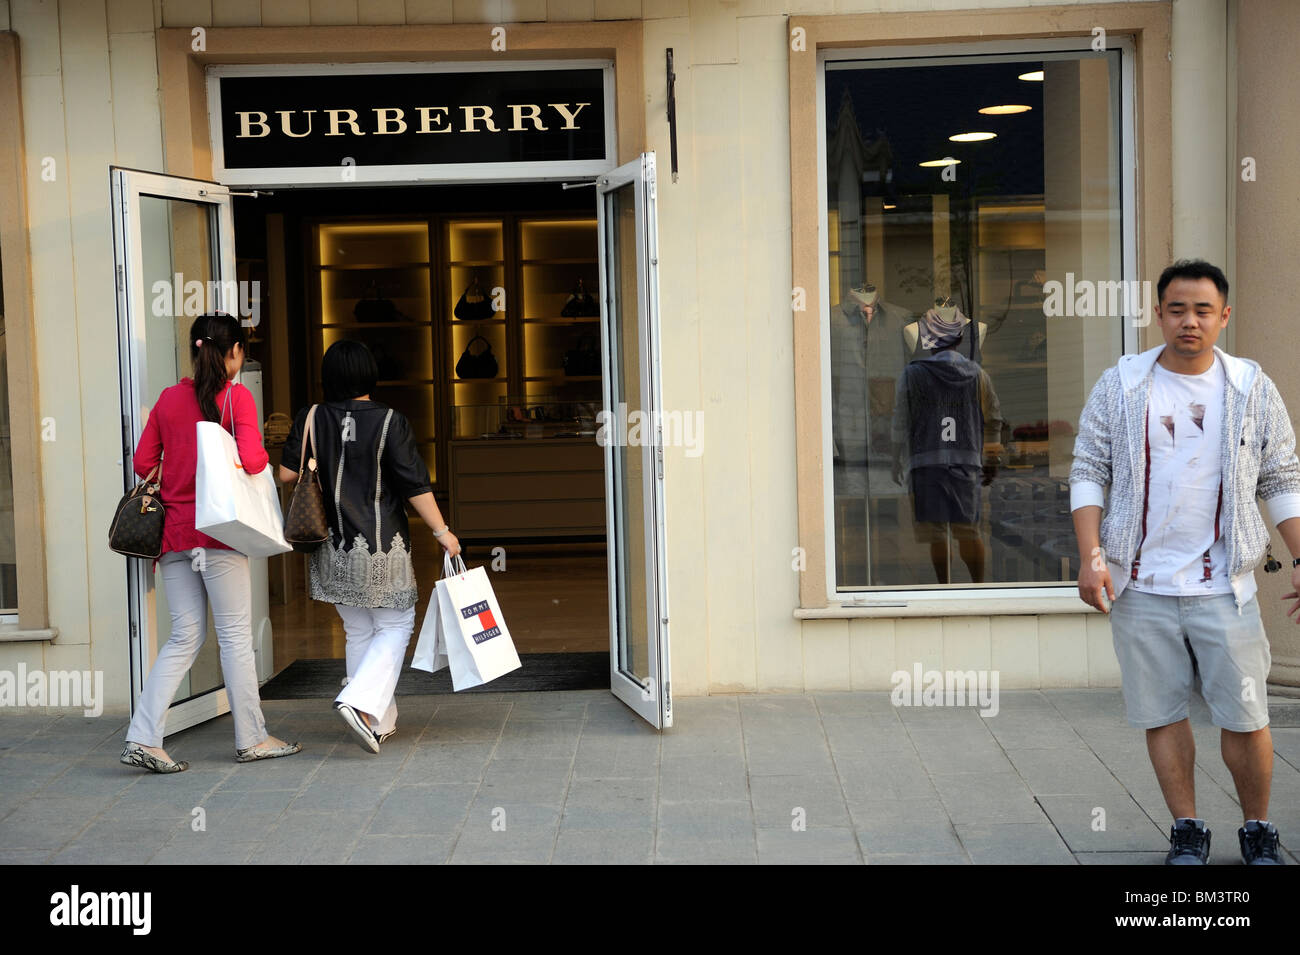 burberry outlet location 1kha  burberry outlet locations